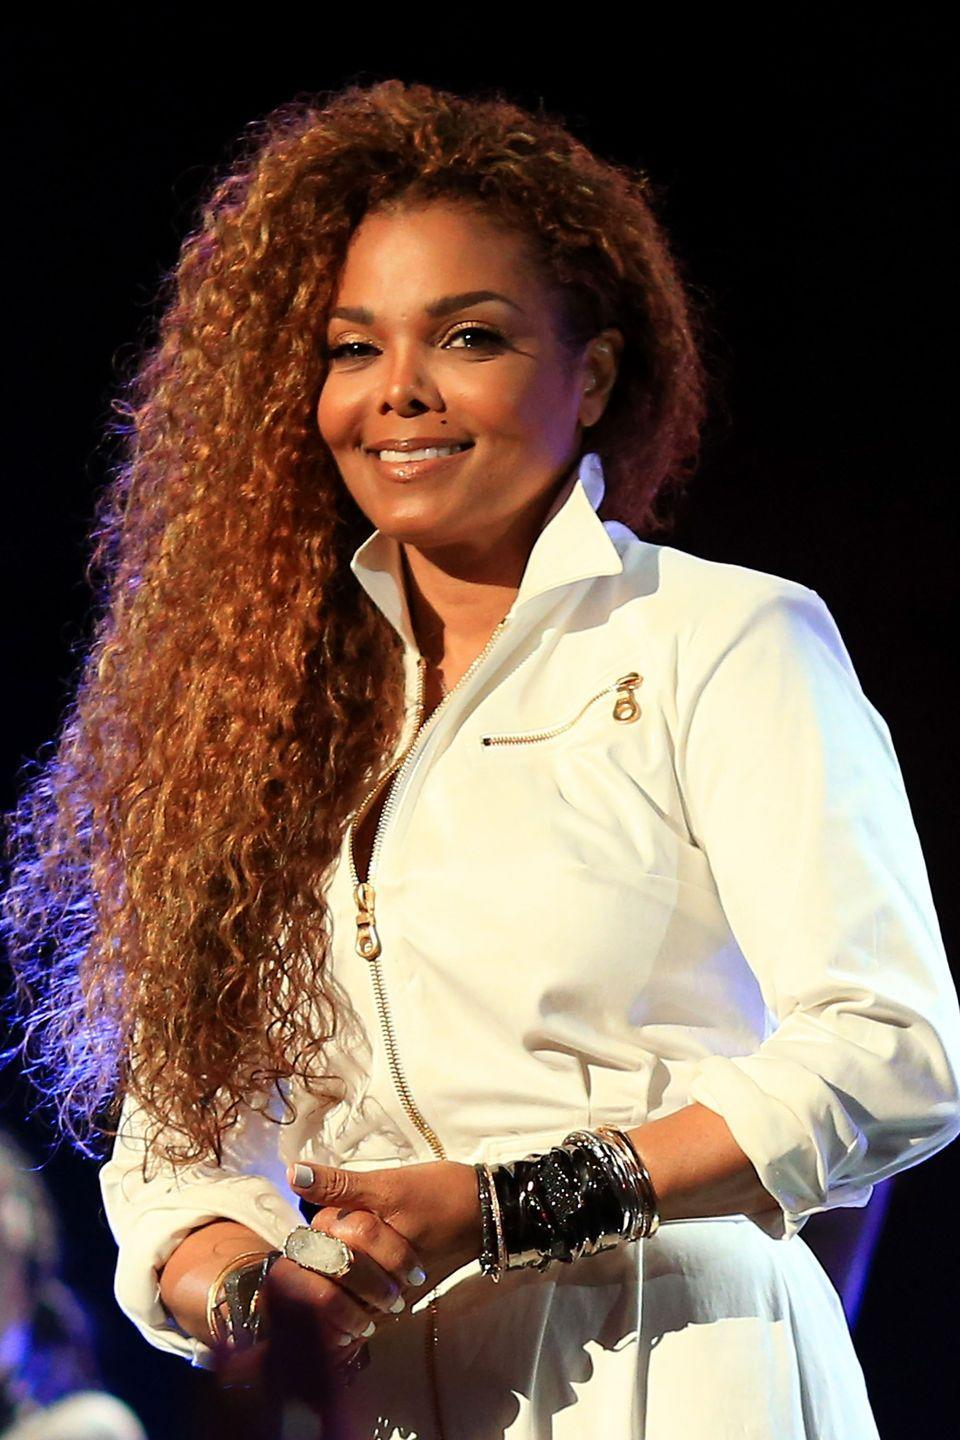 """<p>In 2004, Justin Tinberlake was performing with Janet Jackson at the Super Bowl when he ripped off part of her bra mid-song, exposing her bare breast to the 143.6 million viewers for about a half-second. Adding insult to humiliating injury and despite having not caused the incident, it was Jackson, not Timberlake, who received a huge amount of consequent vitriol. While Timberlake sailed on into a sea of global adulation, Jackson was widely blamed - the Grammys banned her from performing and even attending (meanwhile Timberlake won two awards), and <a href=""""https://www.billboard.com/articles/news/super-bowl/8007041/janet-jackson-justin-timberlake-2004-super-bowl-what-happened"""" rel=""""nofollow noopener"""" target=""""_blank"""" data-ylk=""""slk:MTV blacklisted"""" class=""""link rapid-noclick-resp"""">MTV blacklisted</a> her singles and music videos. MTV's CEO Tom Freston gave an interview in which he claimed that the """"stunt"""" was all Jackson's fault. Not only was she the victim of the incident, but she was also shamed for it. </p>"""